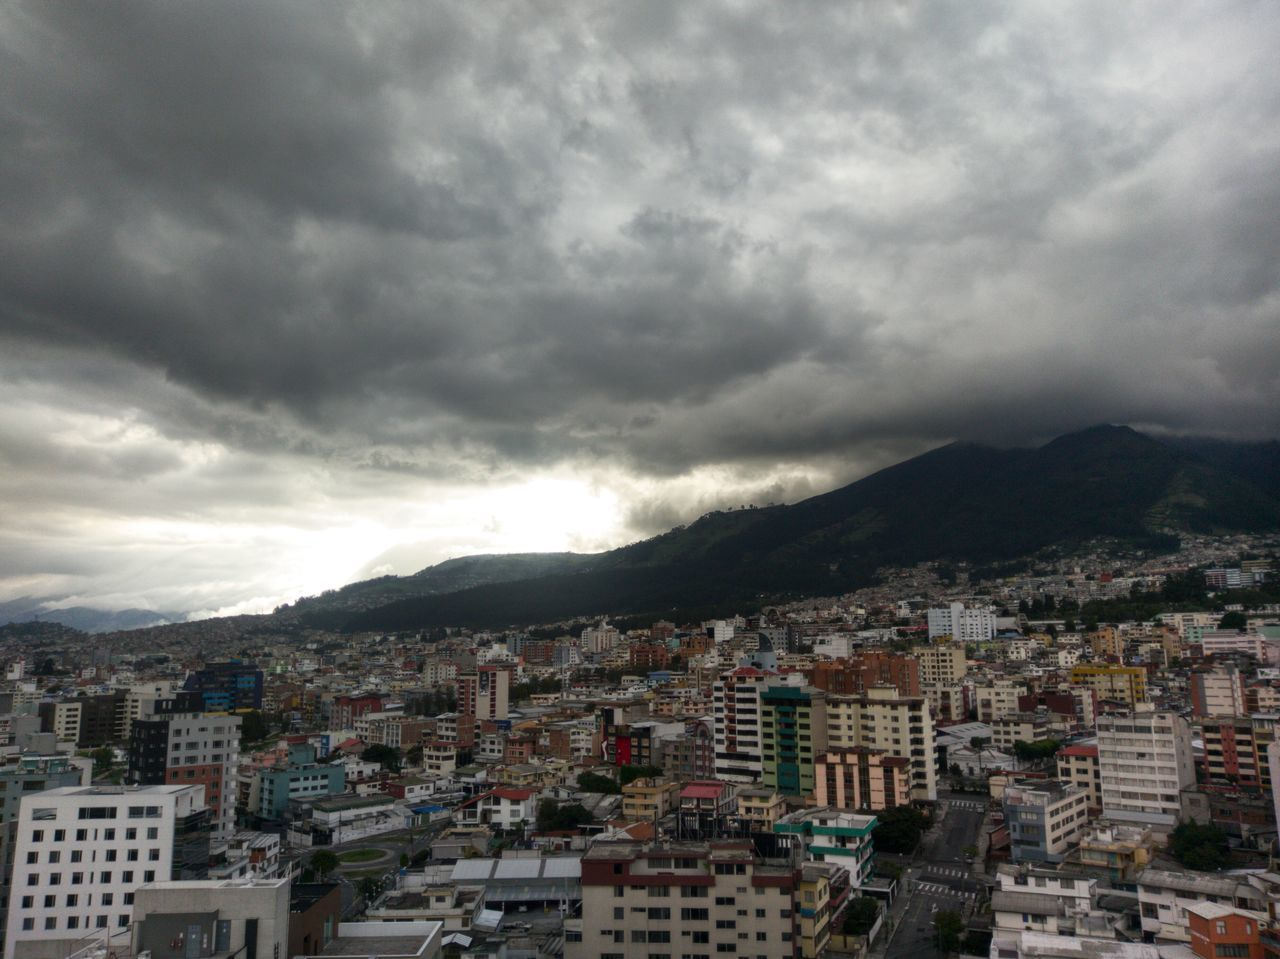 The top floor Cloud - Sky Cityscape Sky Storm Cloud Architecture City Storm Outdoors Quito Ecuador Mountains Mountains And Sky Roof Htc10 HTC